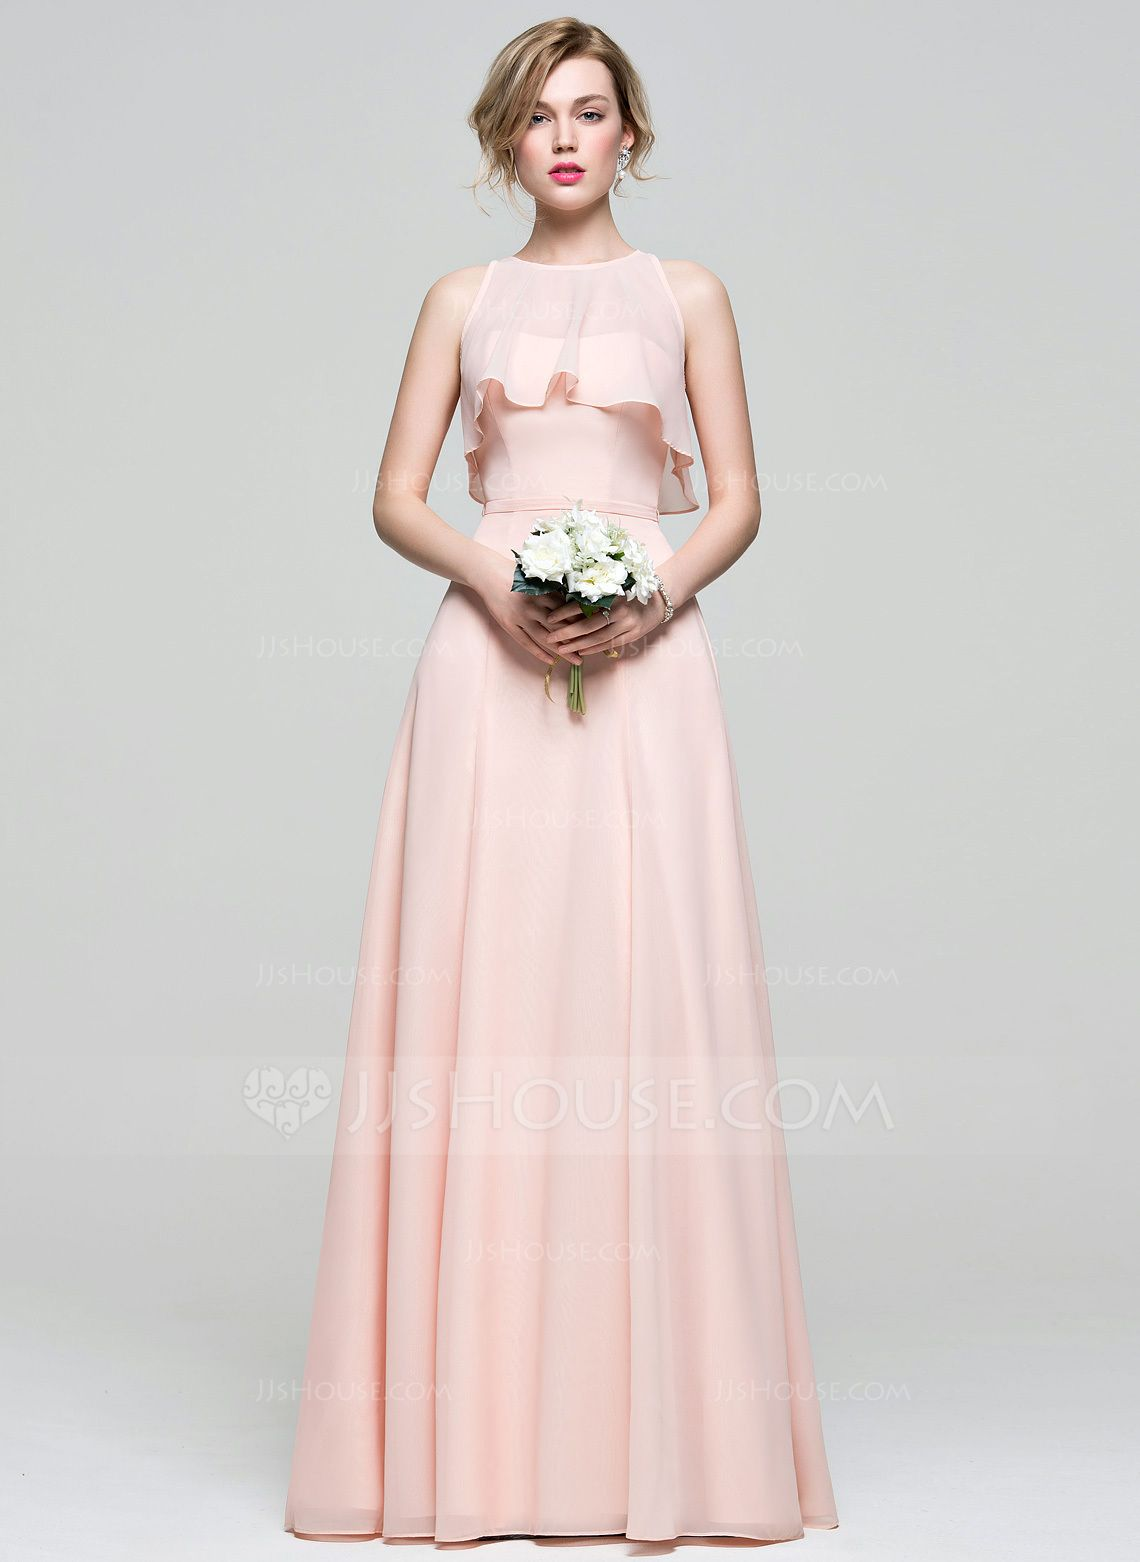 acfadd27c04 A-Line Princess Sweetheart Floor-Length Chiffon Bridesmaid Dress ...